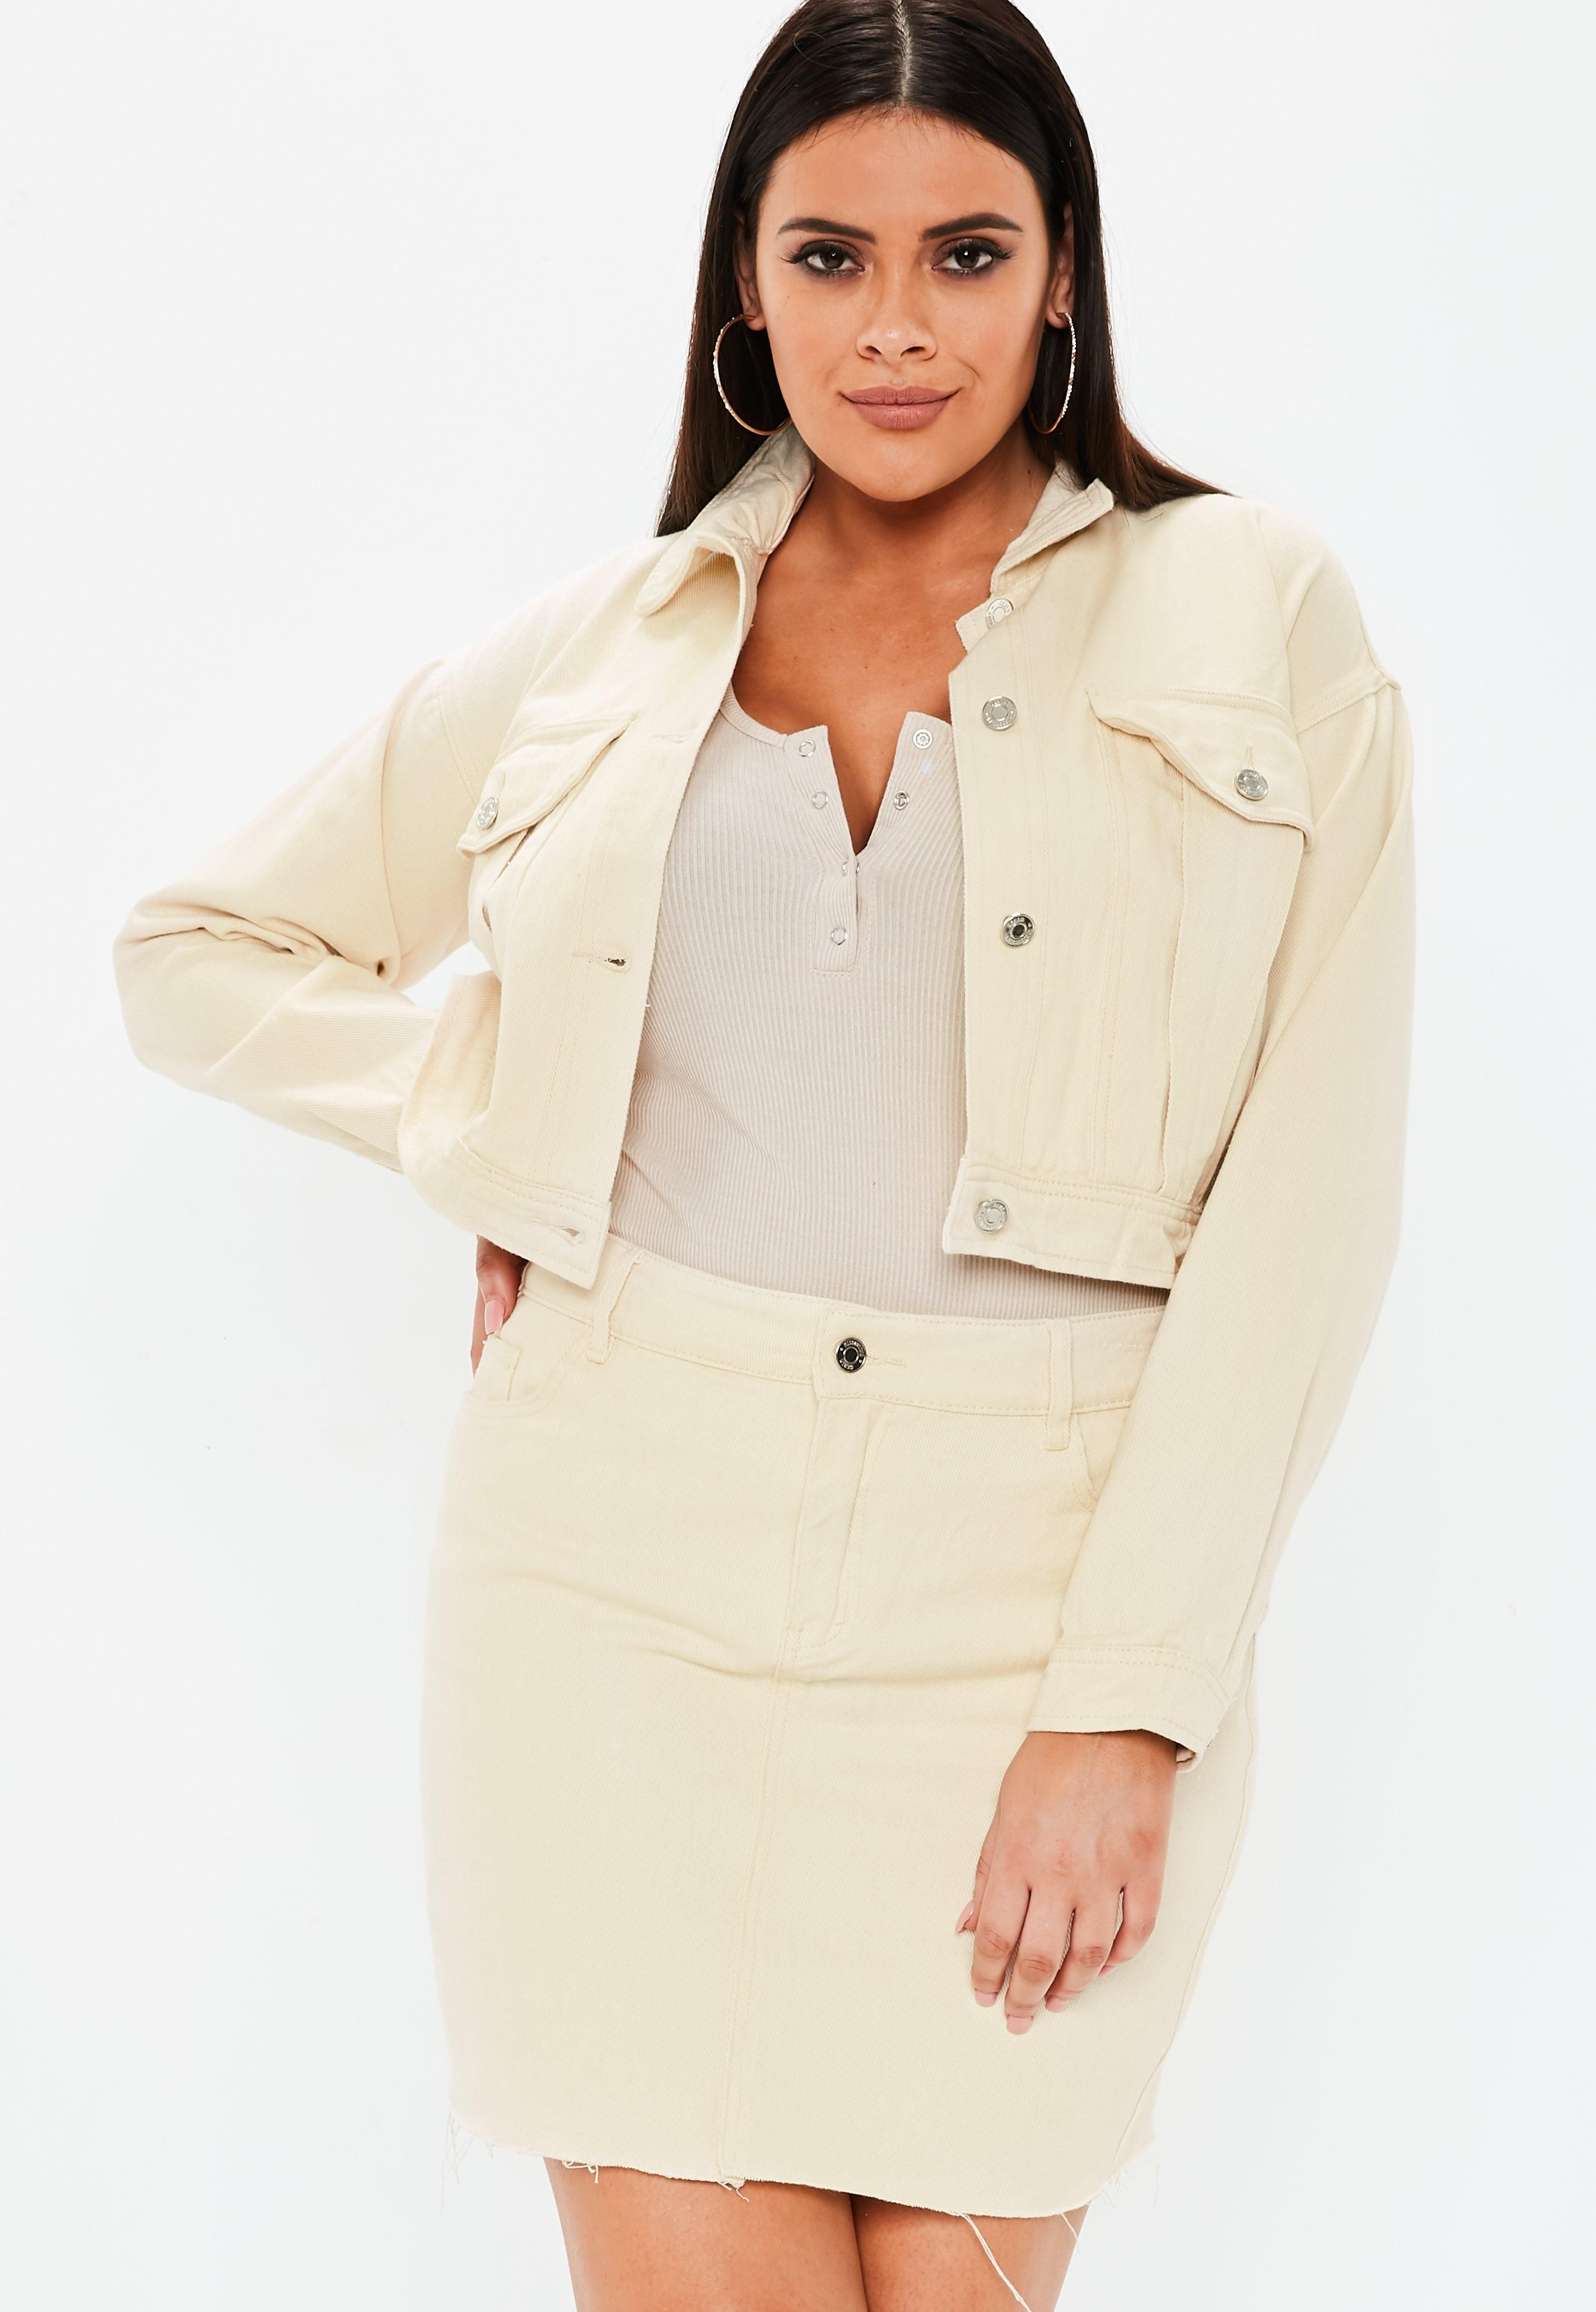 92835f16b361 Plus Size Cream Co Ord Contrast Stitch Cropped Jacket #Sponsored #Ord,  #Affiliate, #Cream, #Size